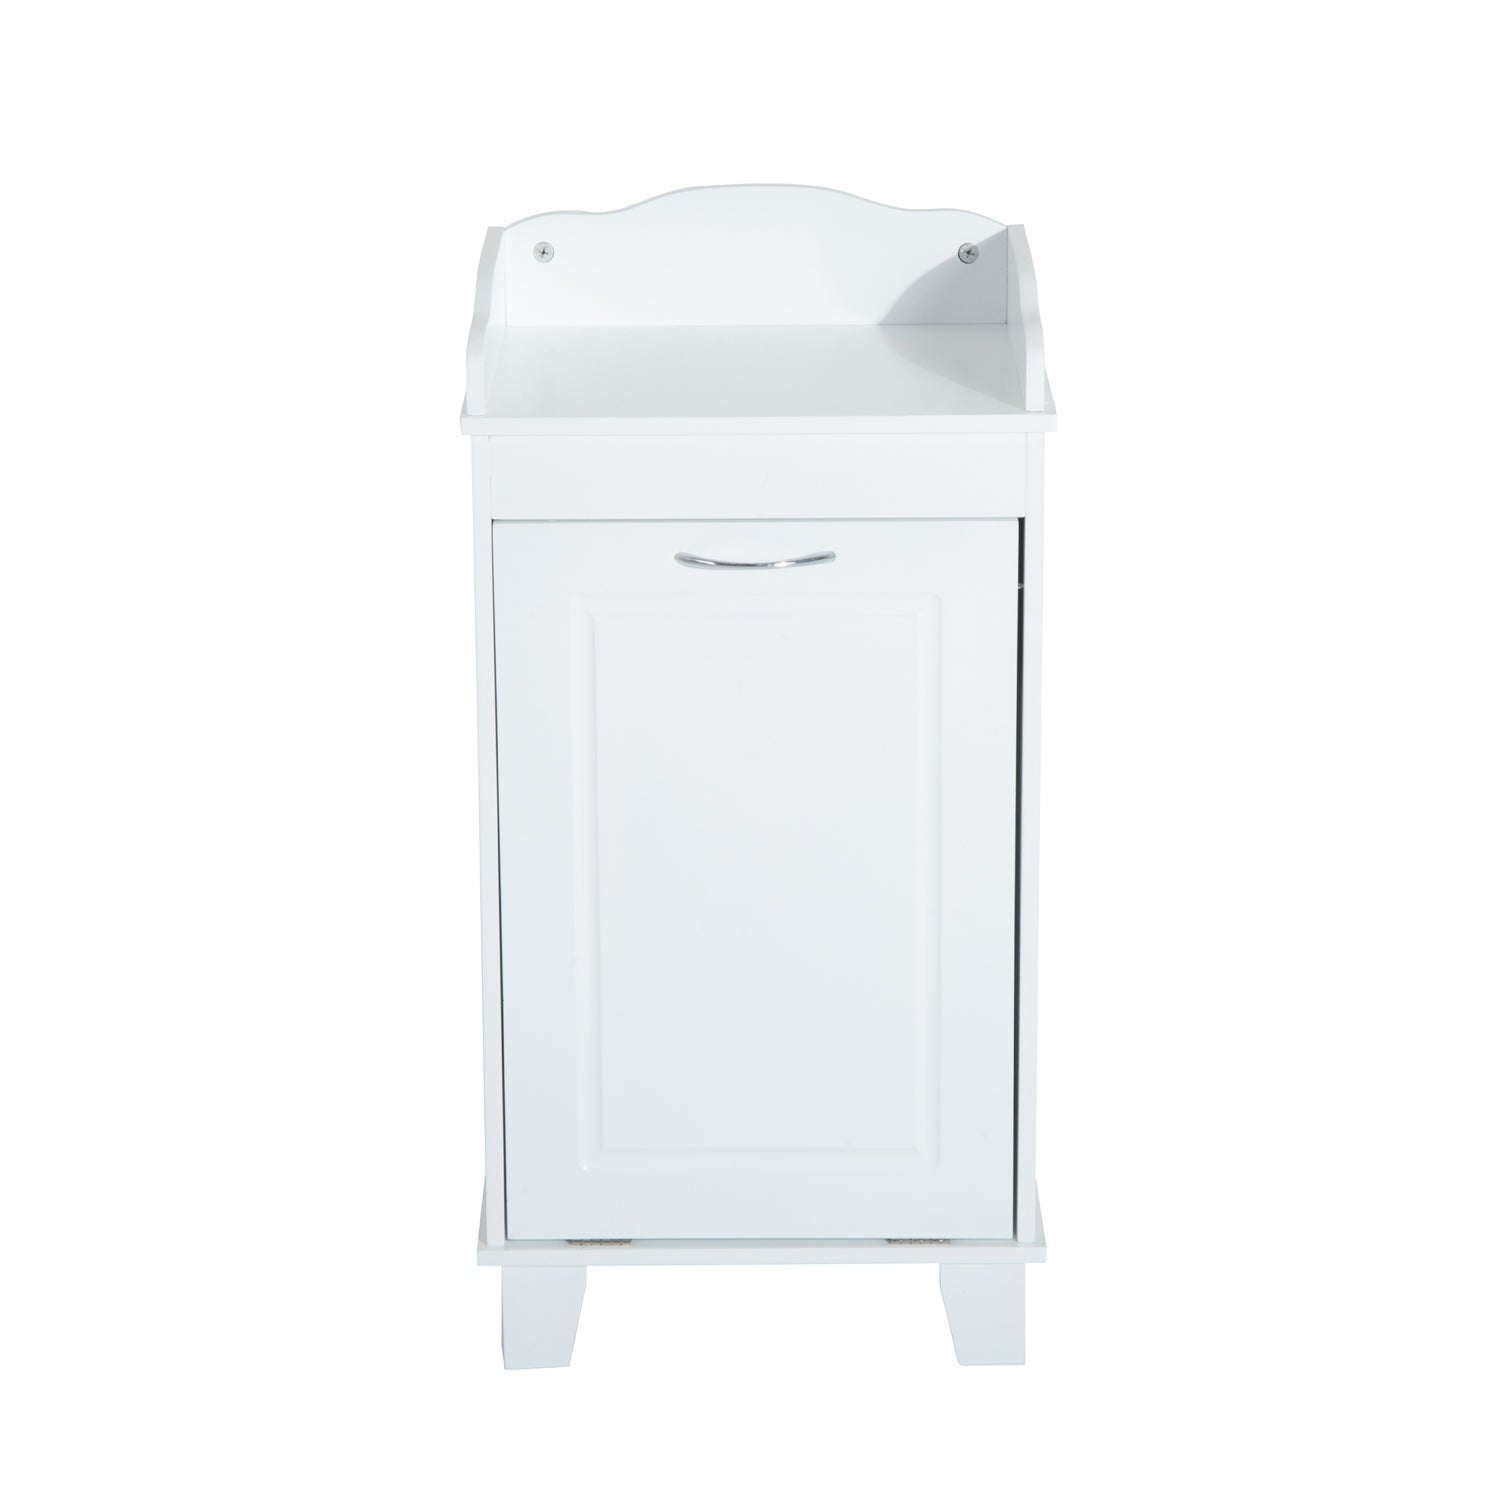 Homcom Wooden Bathroom Laundry Hamper Cabinet As Is Item Overstock 29002403